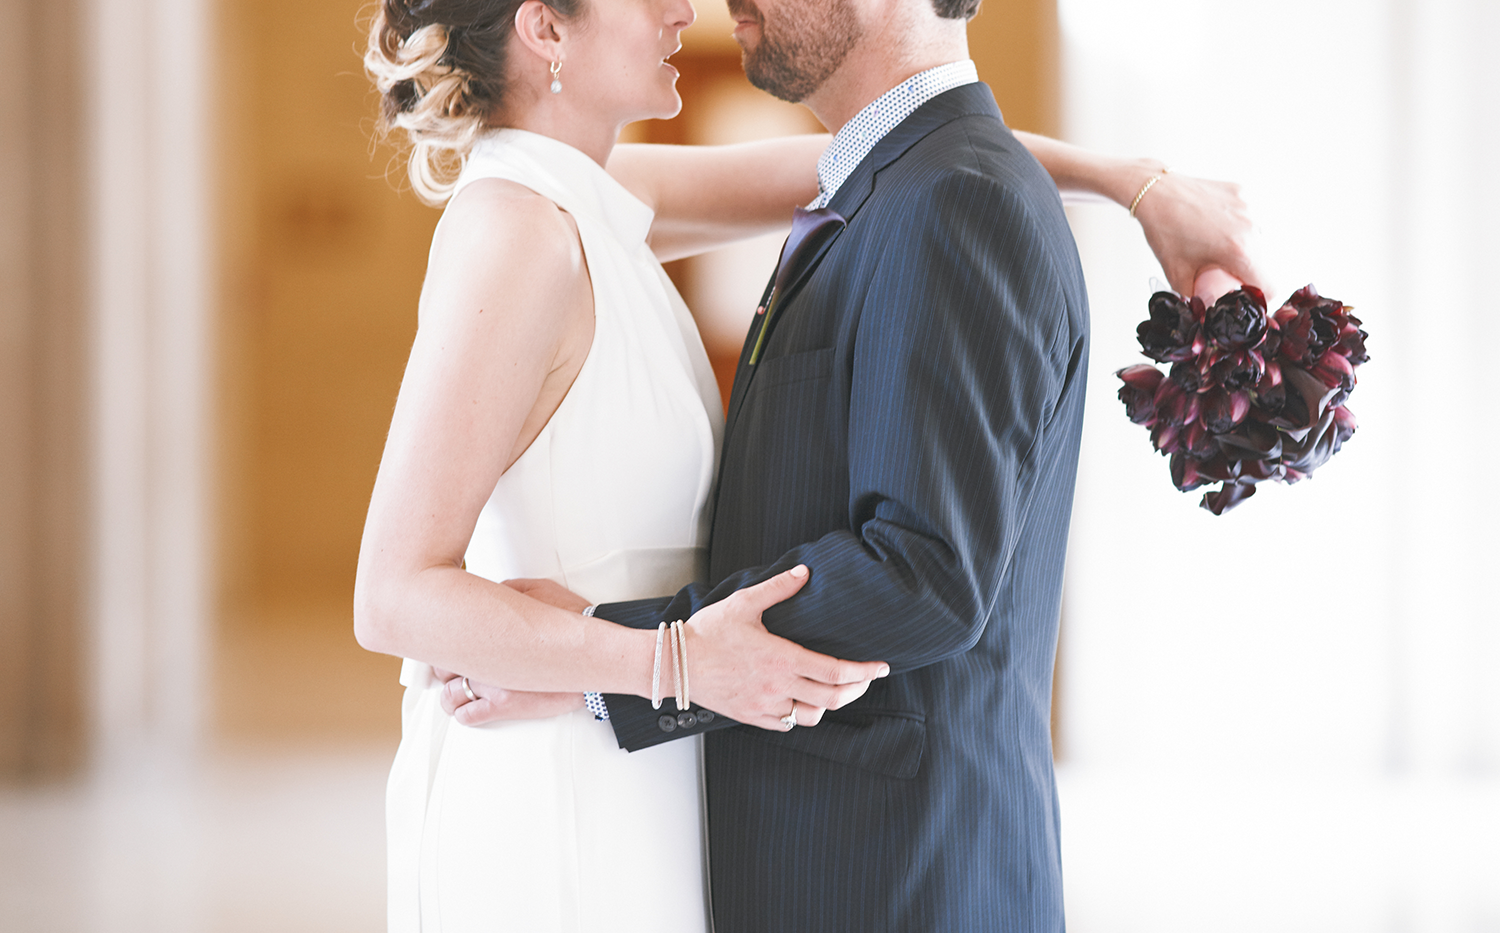 Erin-Brent-2-Luxchromatic-best-san-francisco-wedding-photographer-photography-city-hall-bride-groom.png